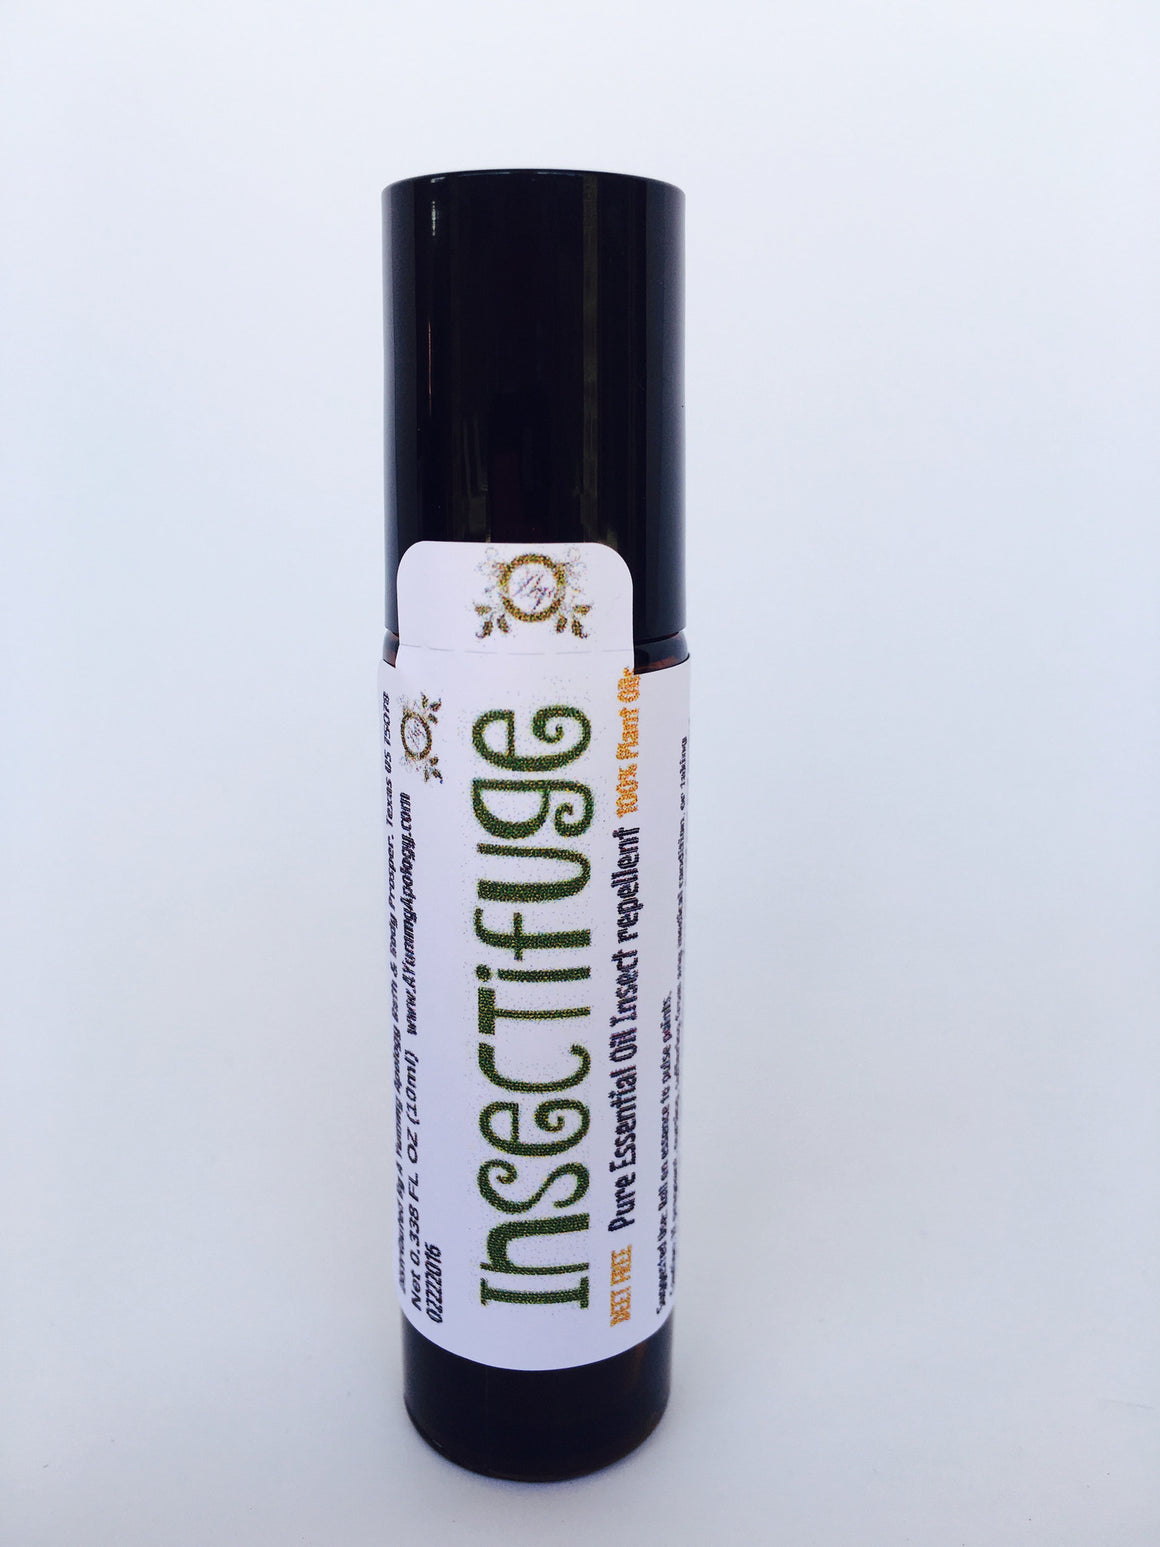 Insectifuge Roll-On Natural Insect Repellent